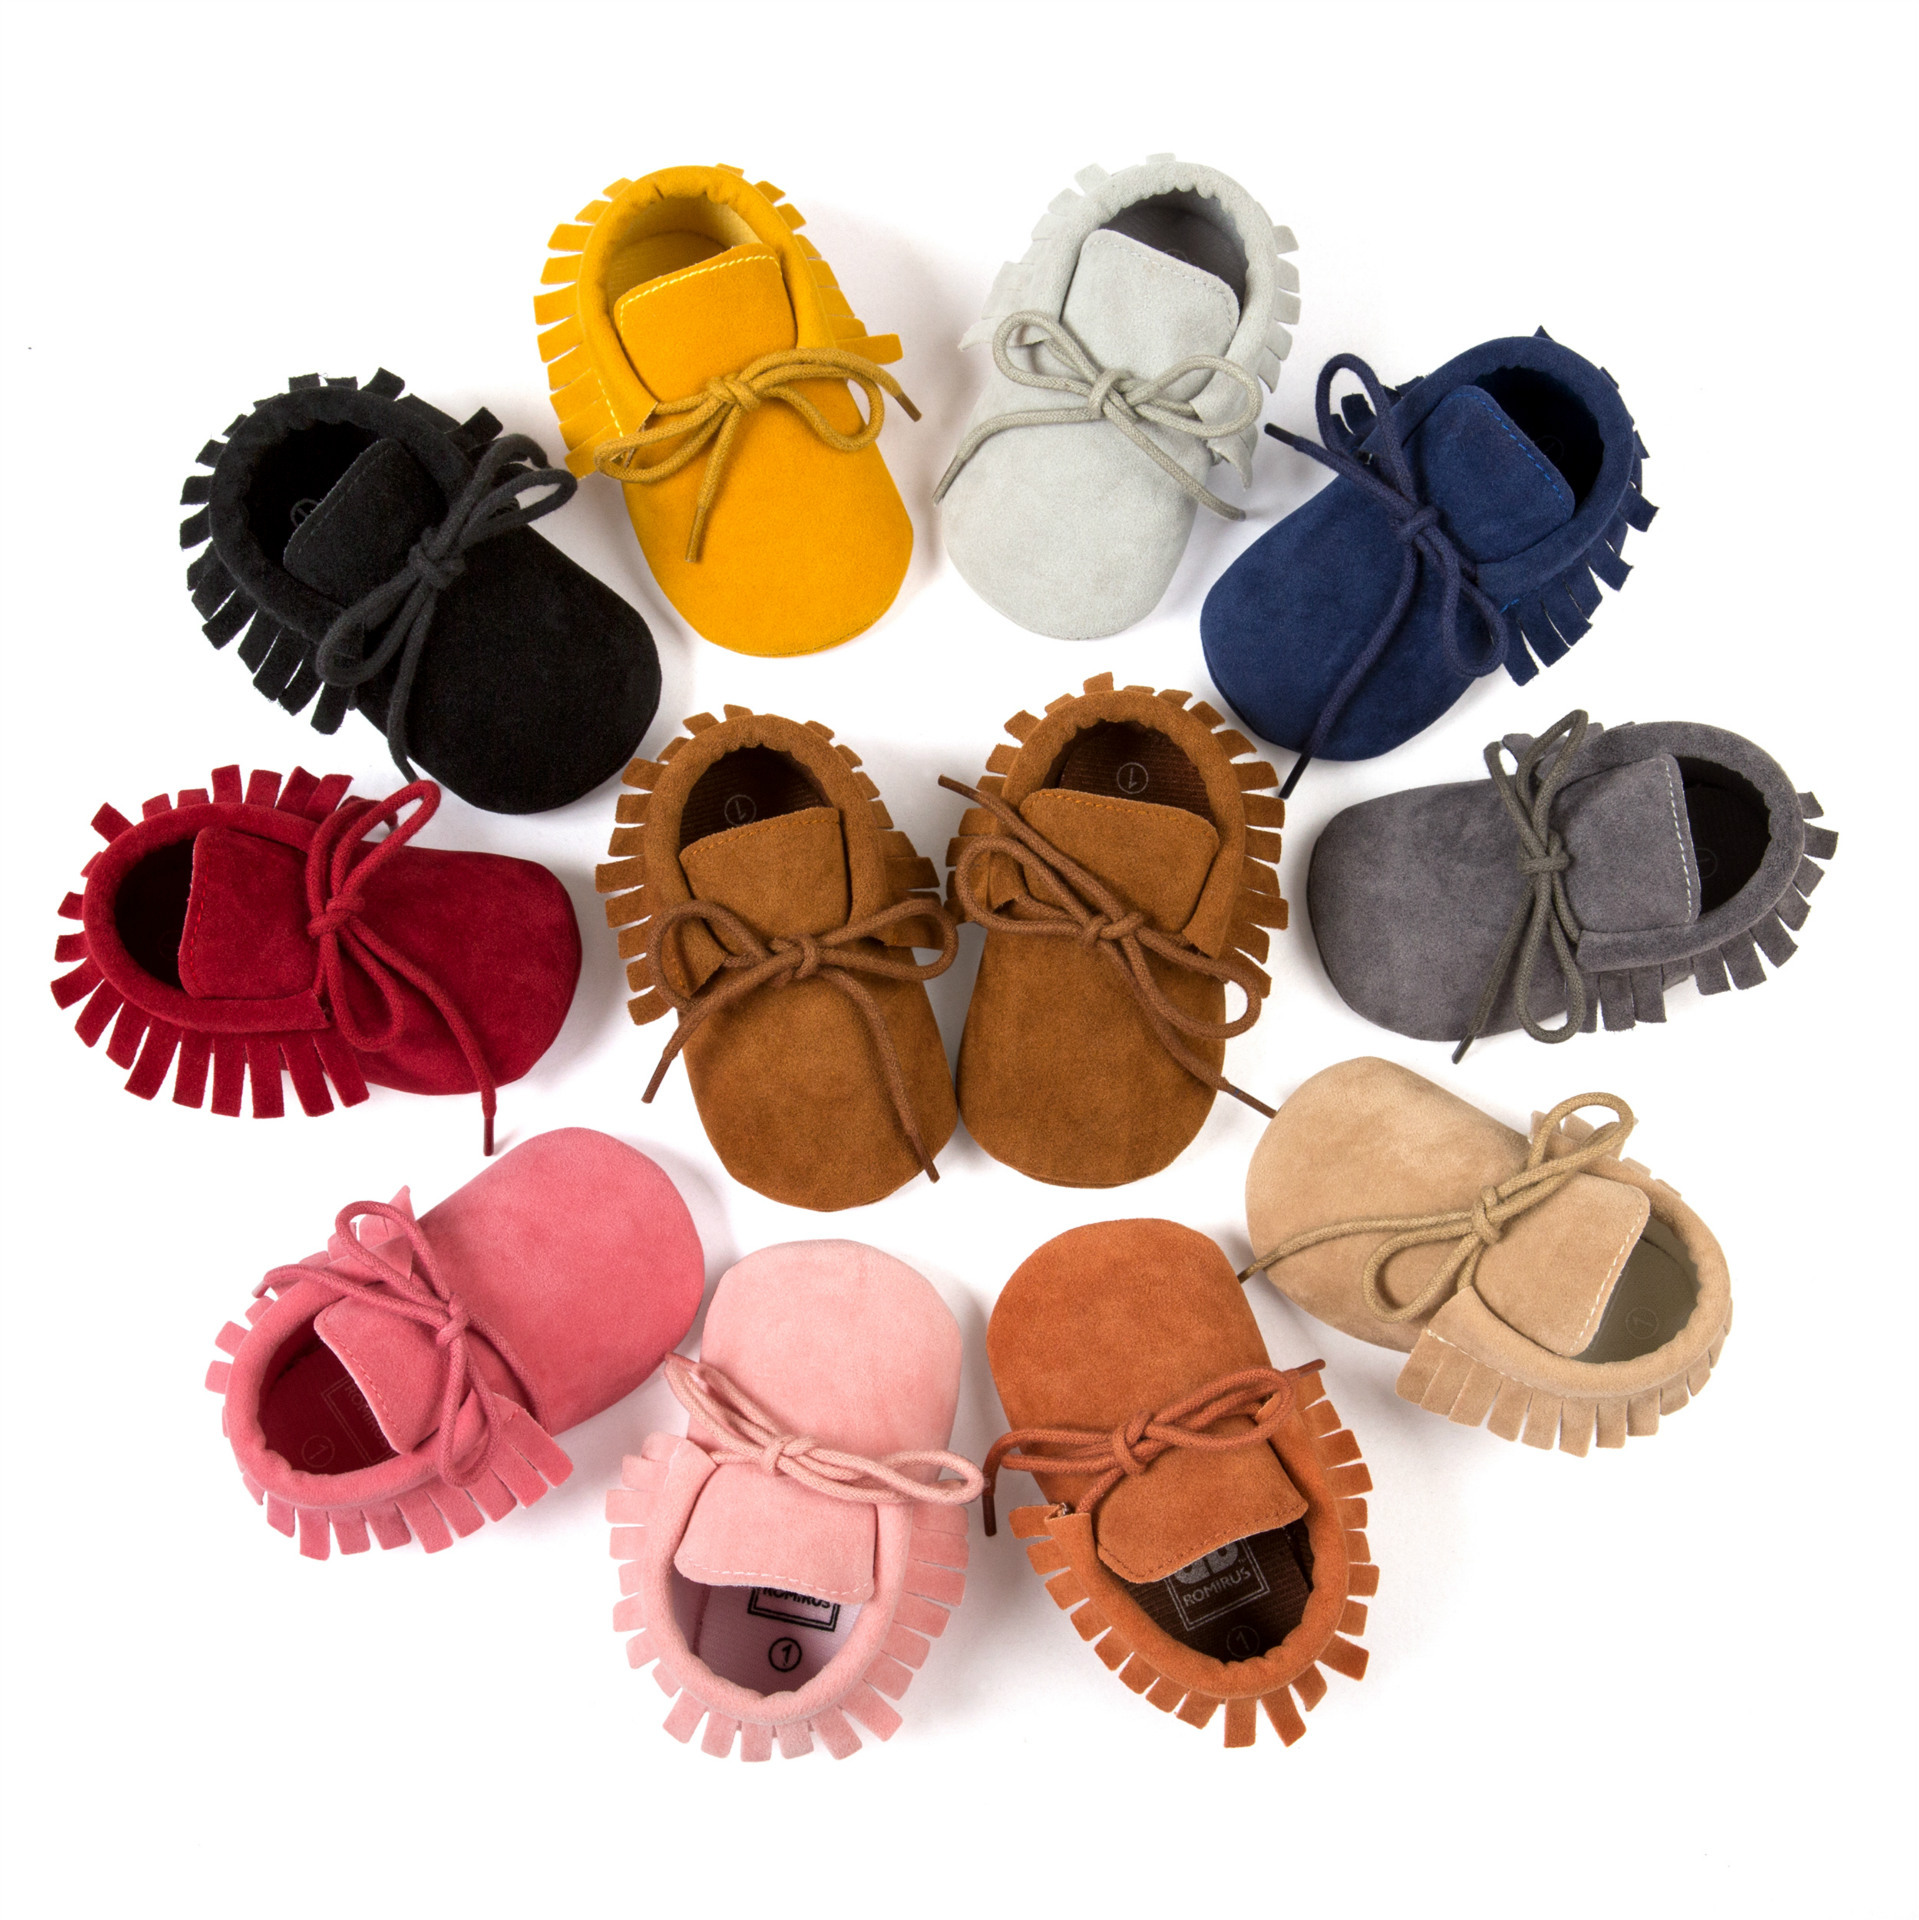 Soft Sole baby shoes Moccasin girls Baby First Walker Shoes Toddler PU Leather Non-Slip Newborn Infant Shoes For 0-12M